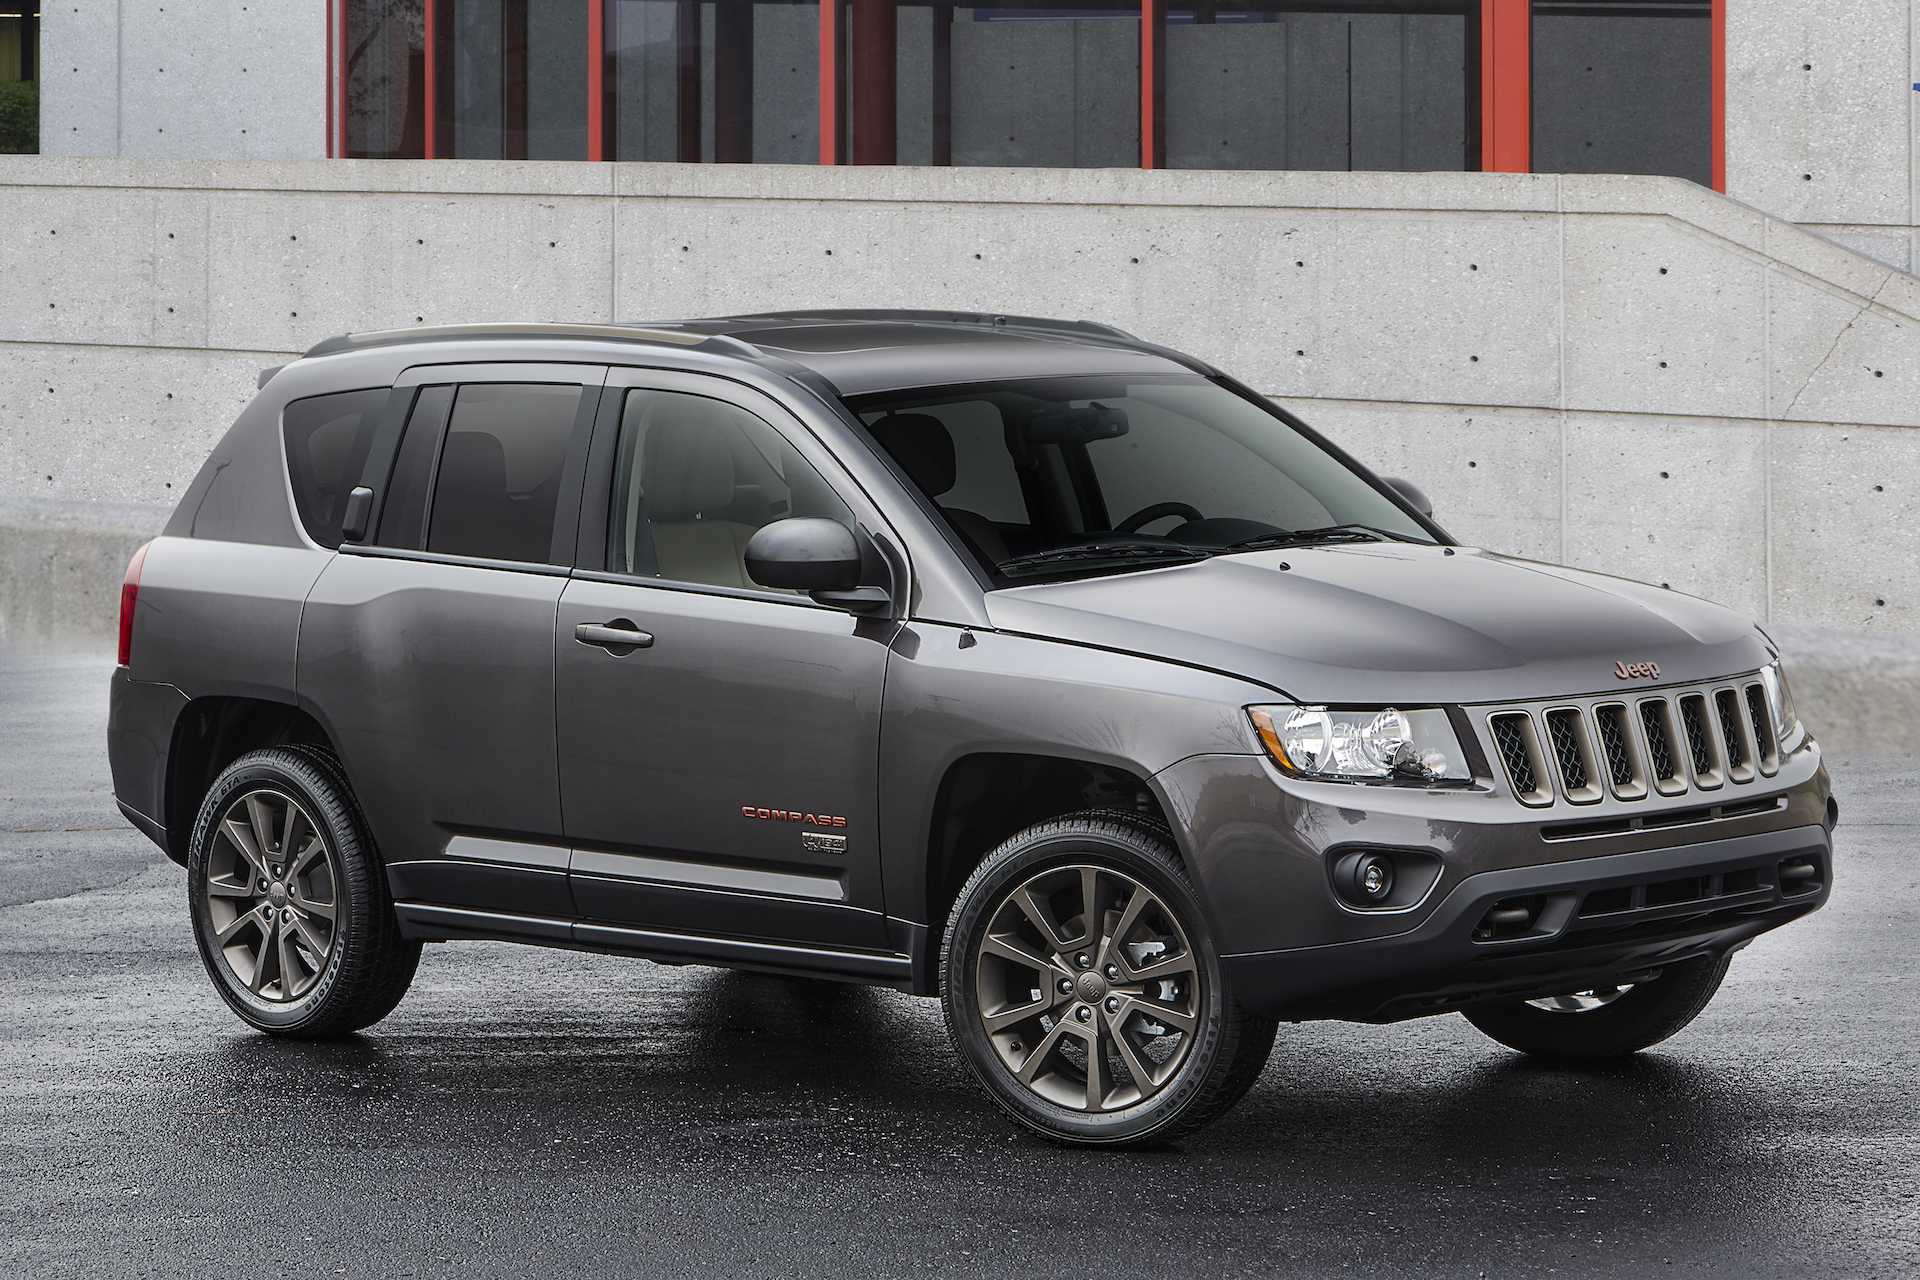 Subaru Kansas City >> 2017 Jeep Compass Review, Ratings, Specs, Prices, and Photos - The Car Connection